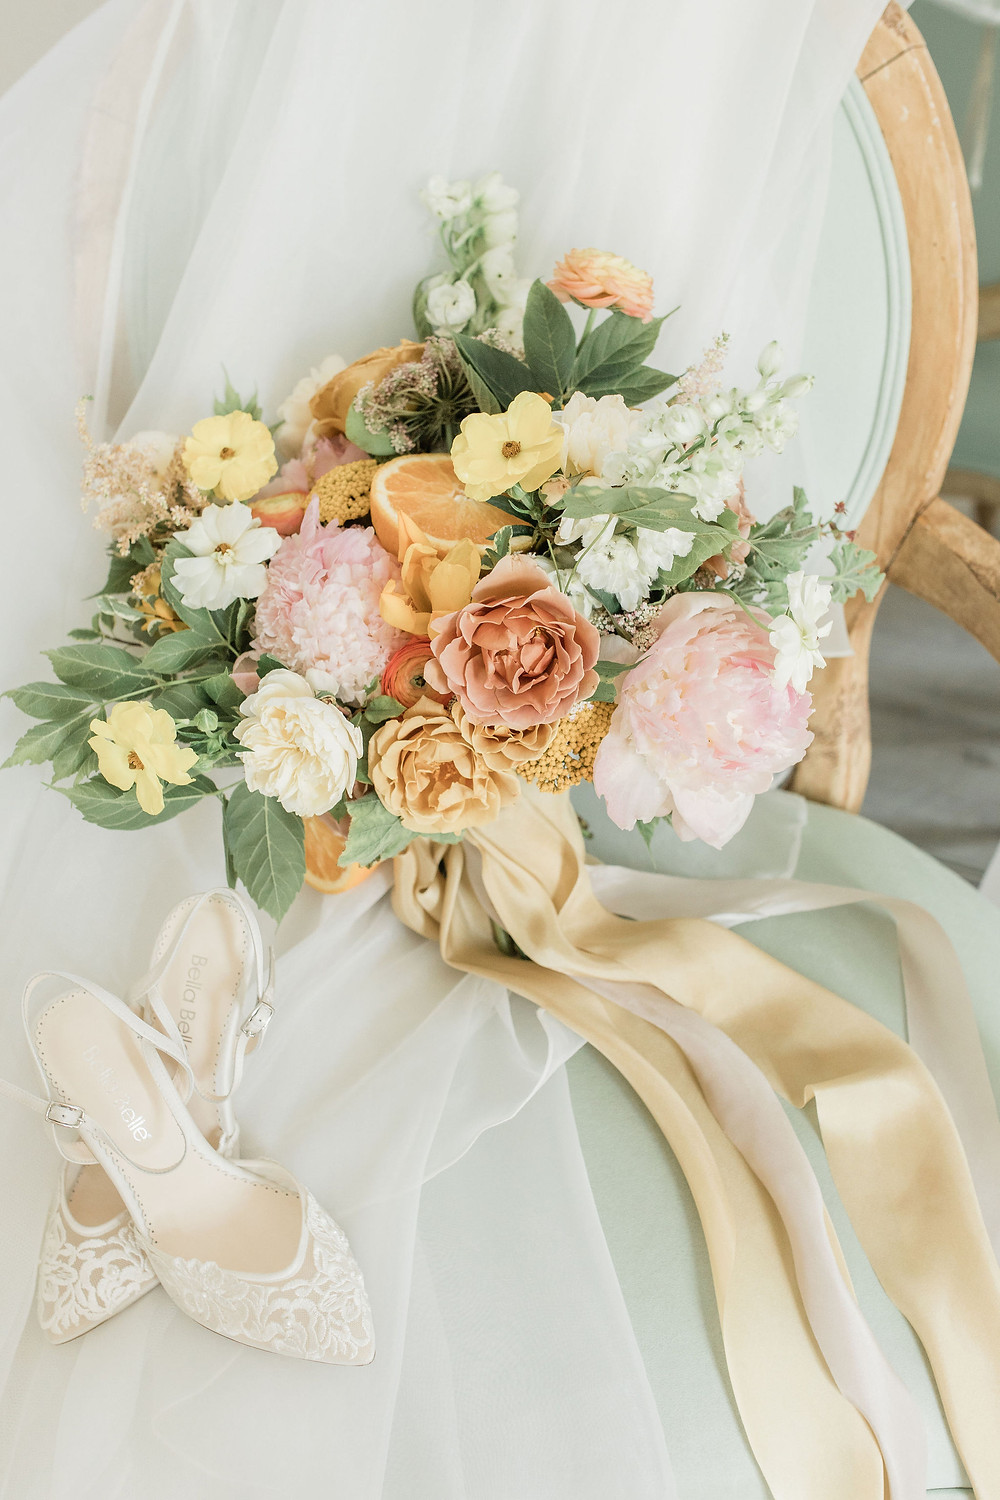 Flowers on chairs, draped with the bridal veil!  Couldn't be more beautiful with our Pistachio green French farmhouse chair.